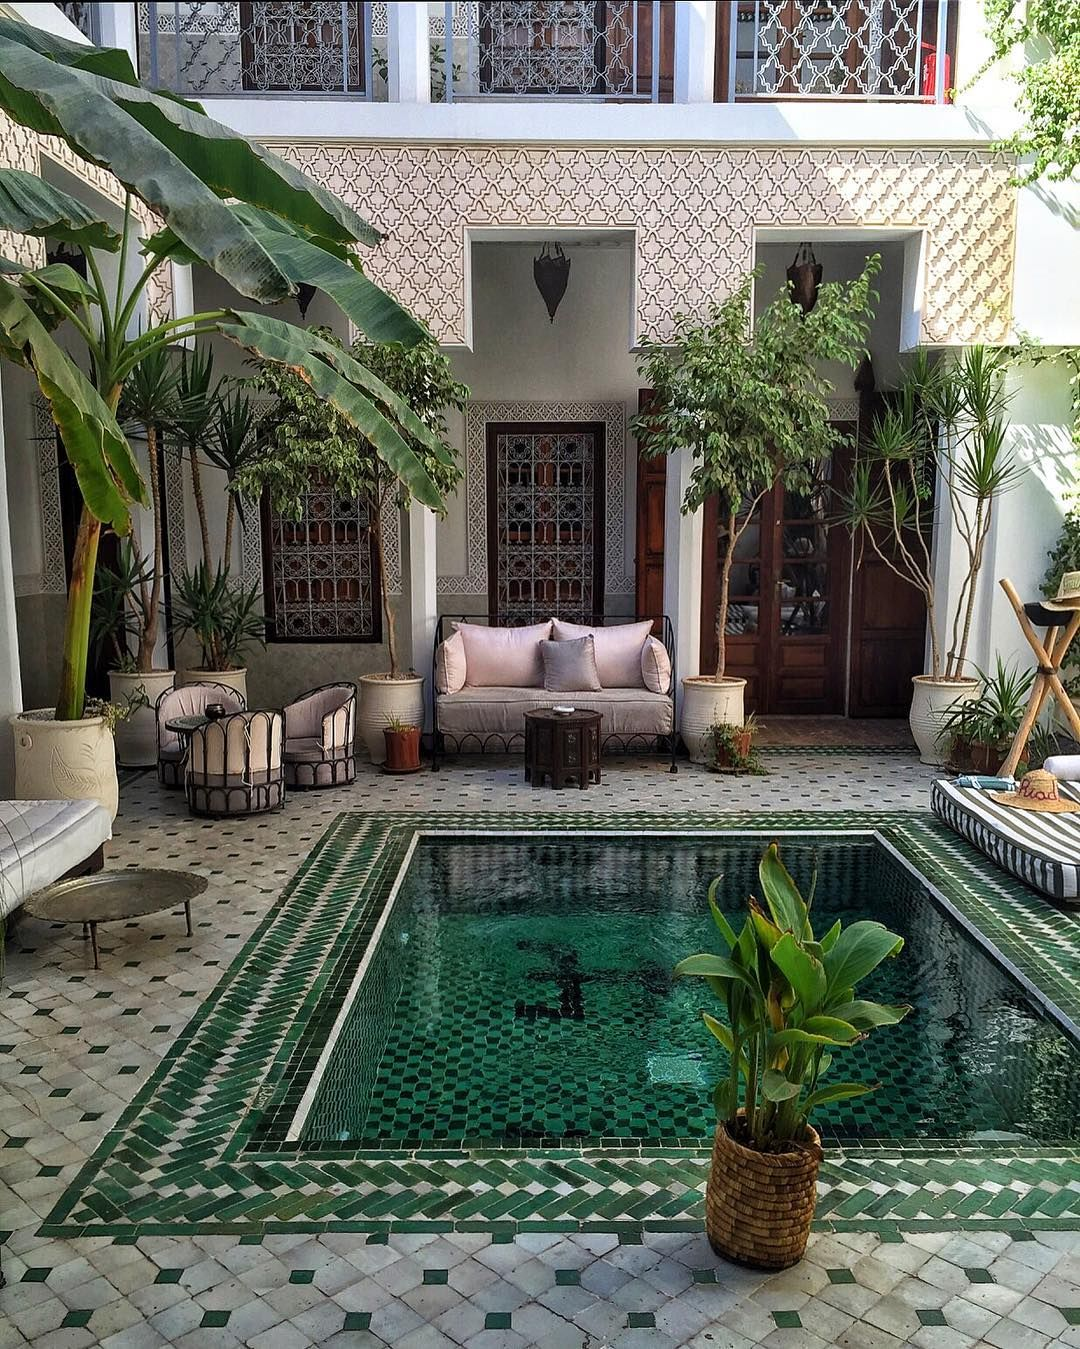 Home Quirks Differences In Decorating By Gender An: Le Riad Yasmine, Marrakesh